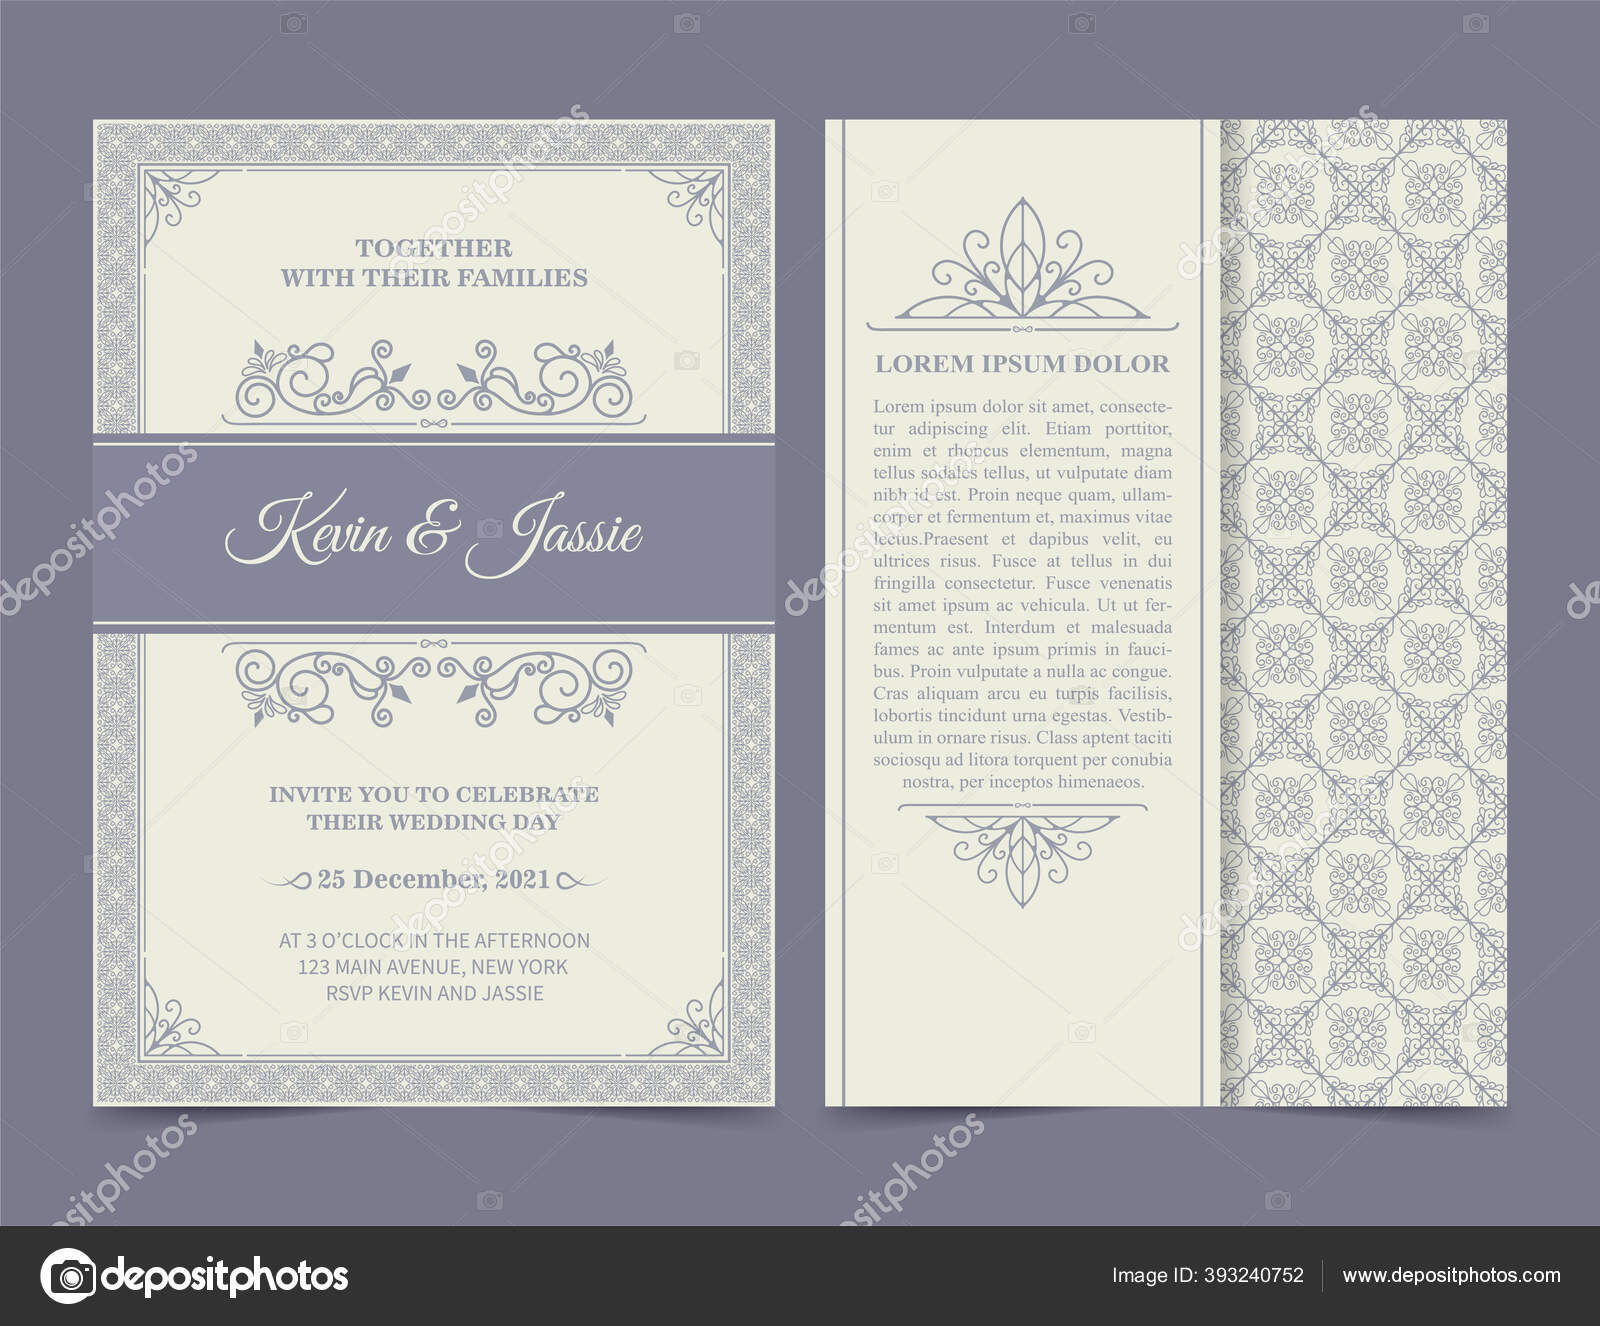 Vintage Style Vector Design Invitation Card White Background Stock Vector C Fotoliastay121 Gmail Com 393240752